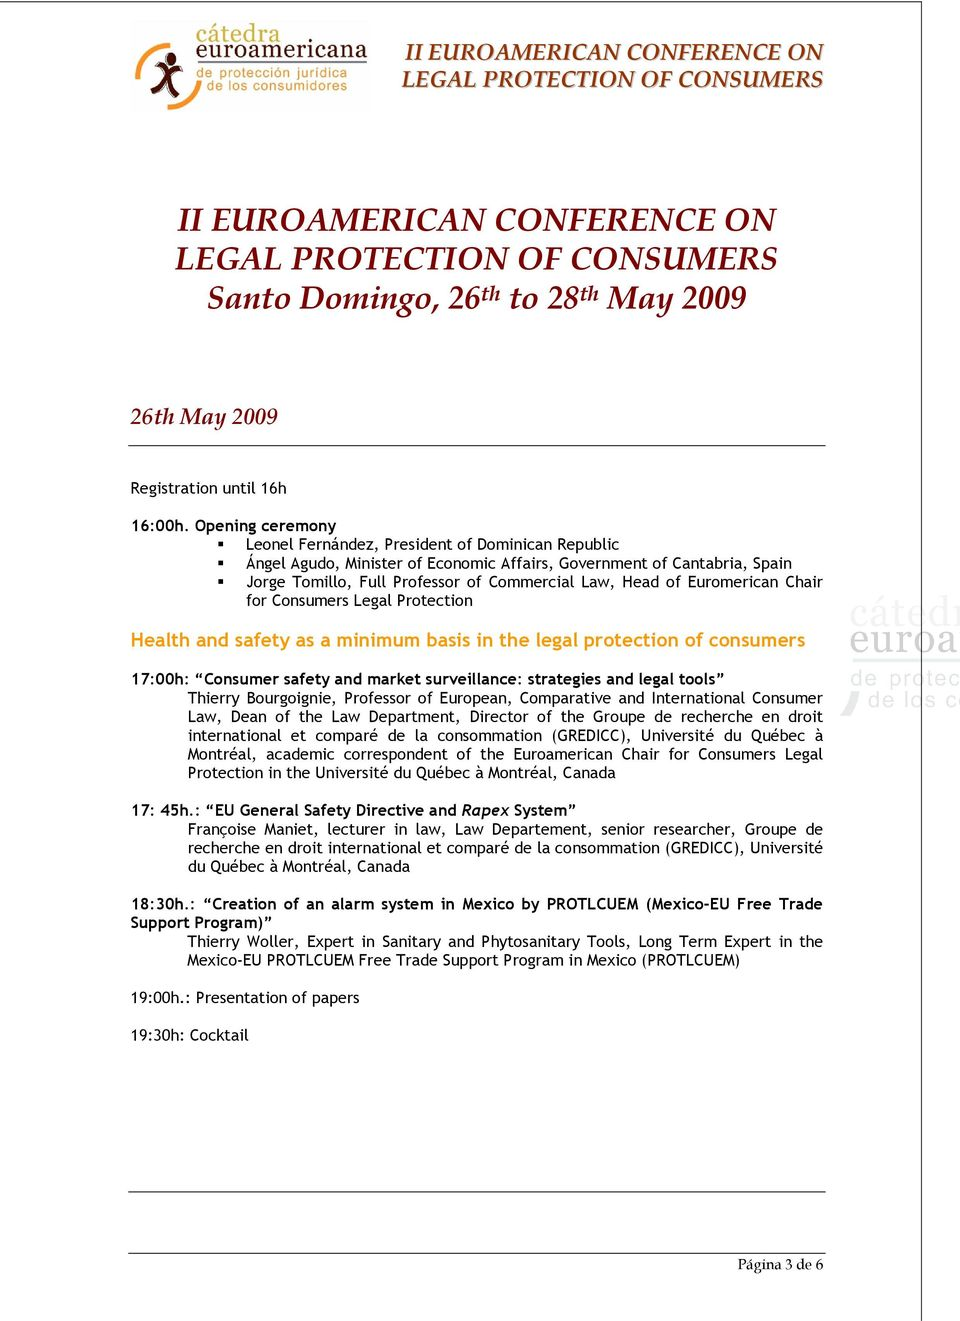 Euromerican Chair for Consumers Legal Protection Health and safety as a minimum basis in the legal protection of consumers 17:00h: Consumer safety and market surveillance: strategies and legal tools